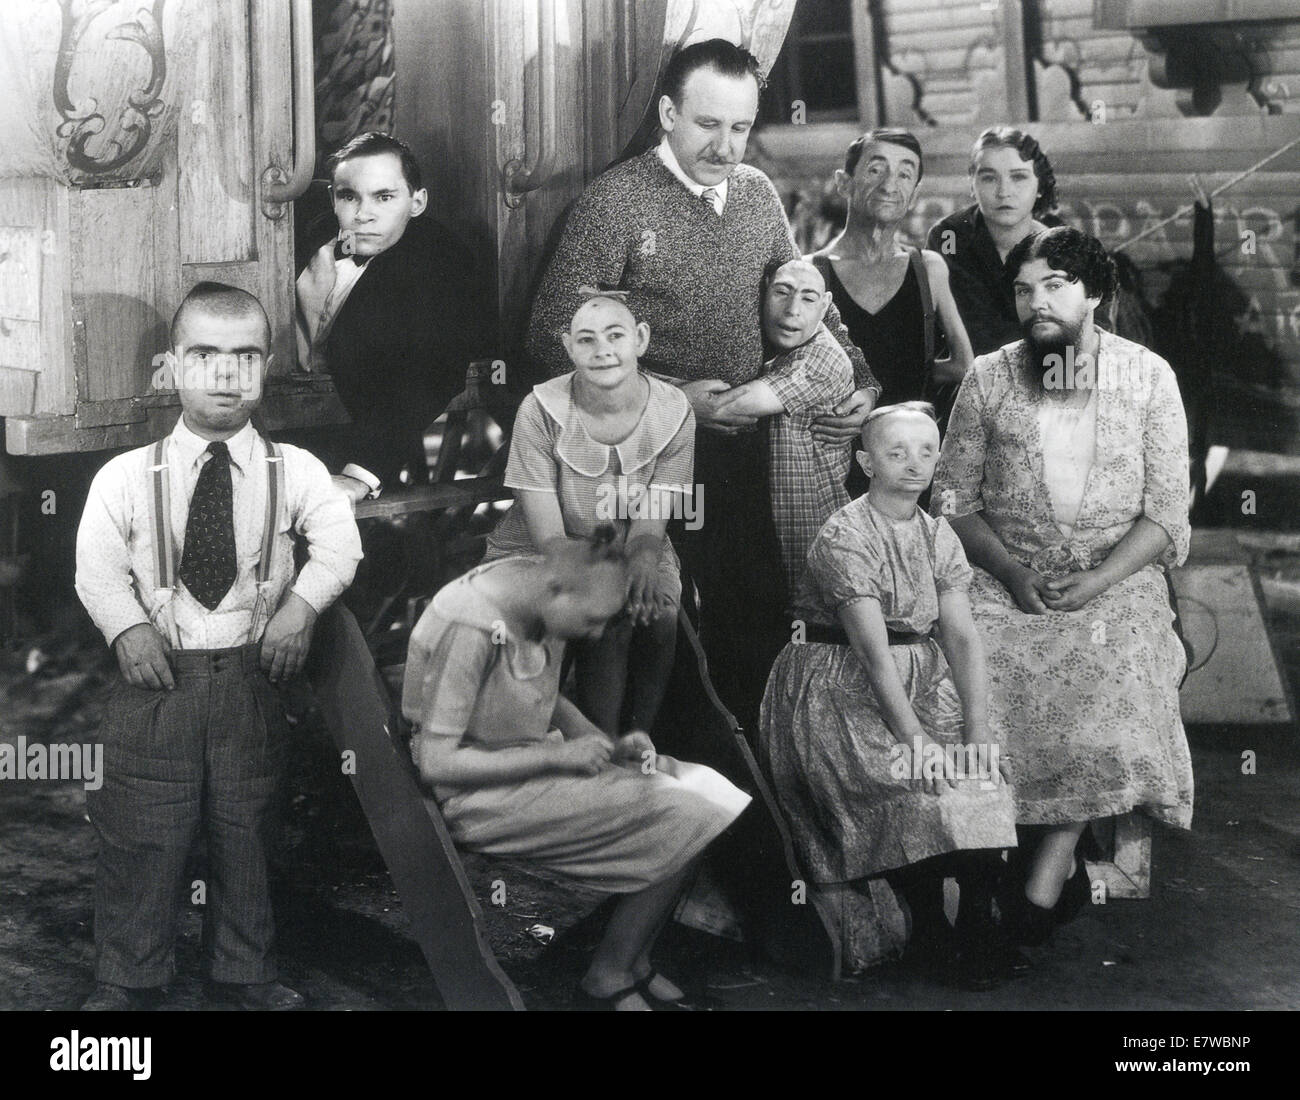 FREAKS 1932 MGM film directed by Tod Browning seen here (top) with some of  the cast